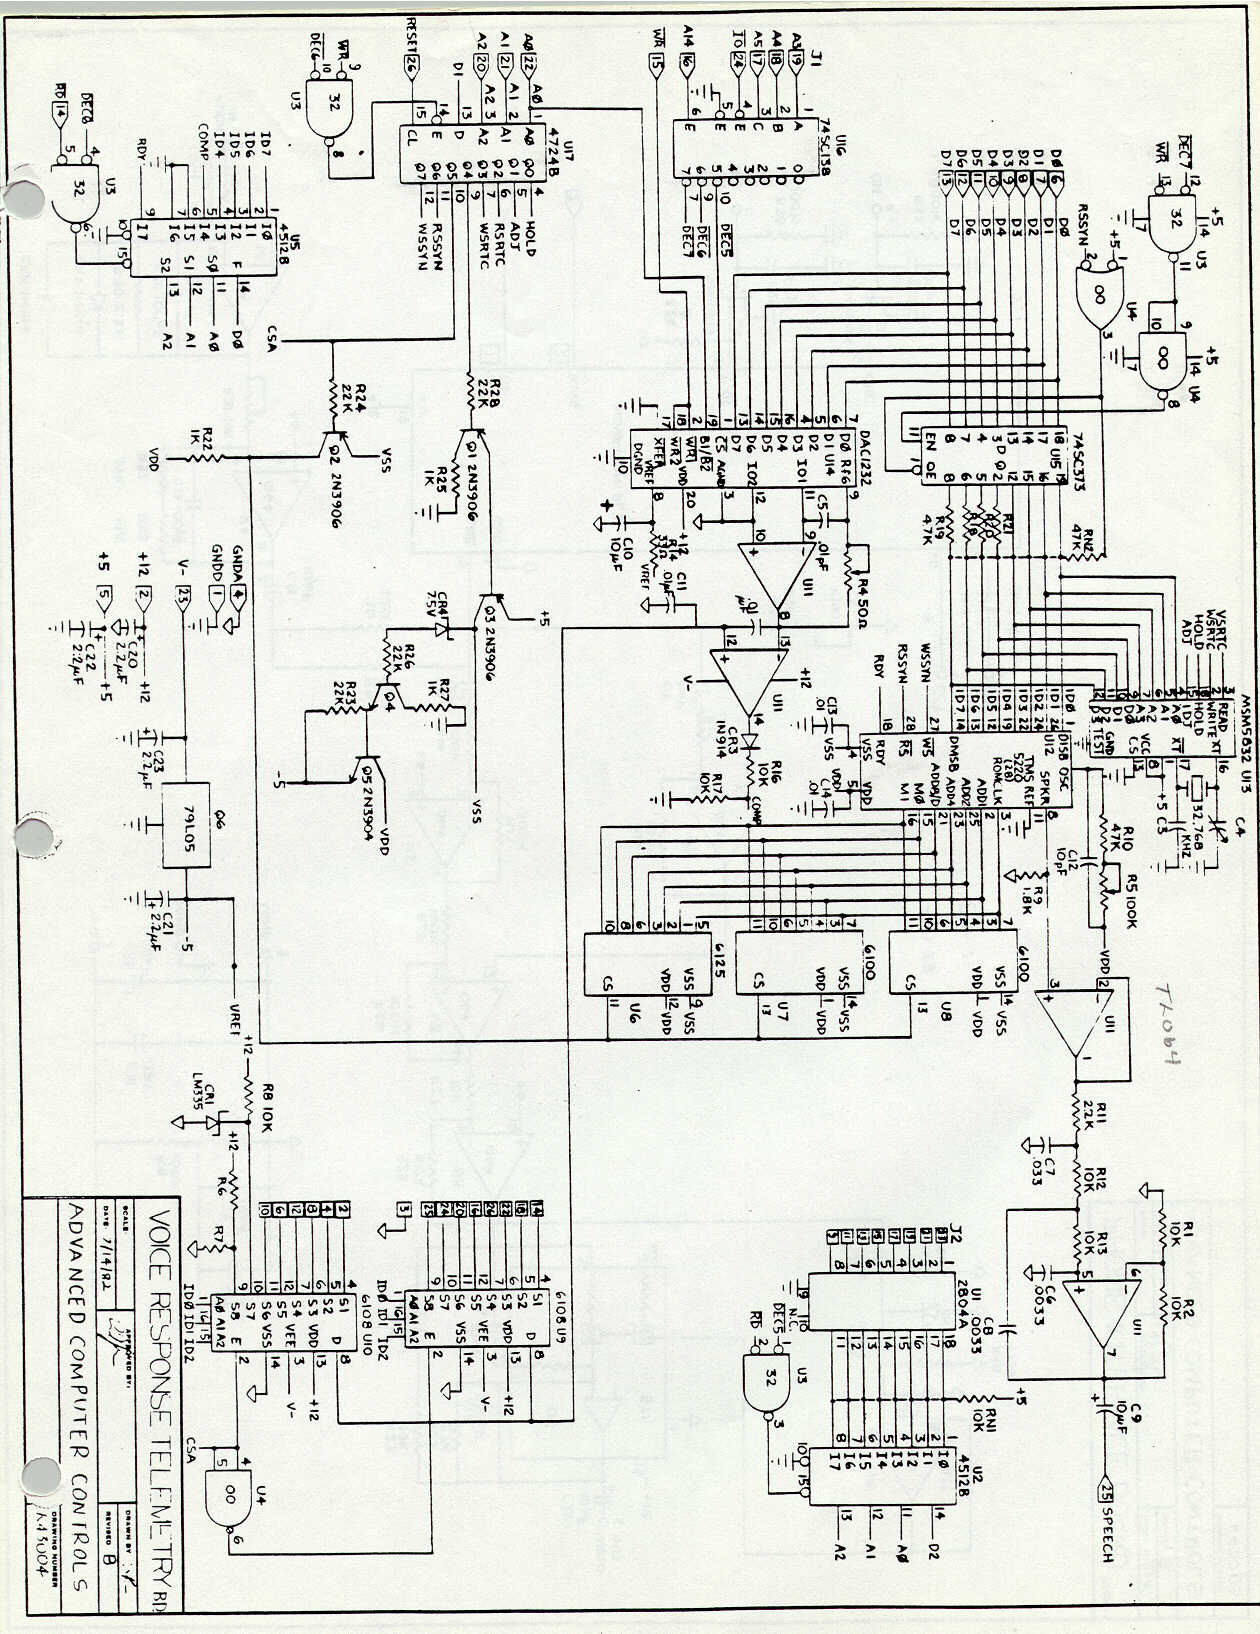 Plc Schematic Vrt - Example Electrical Wiring Diagram •